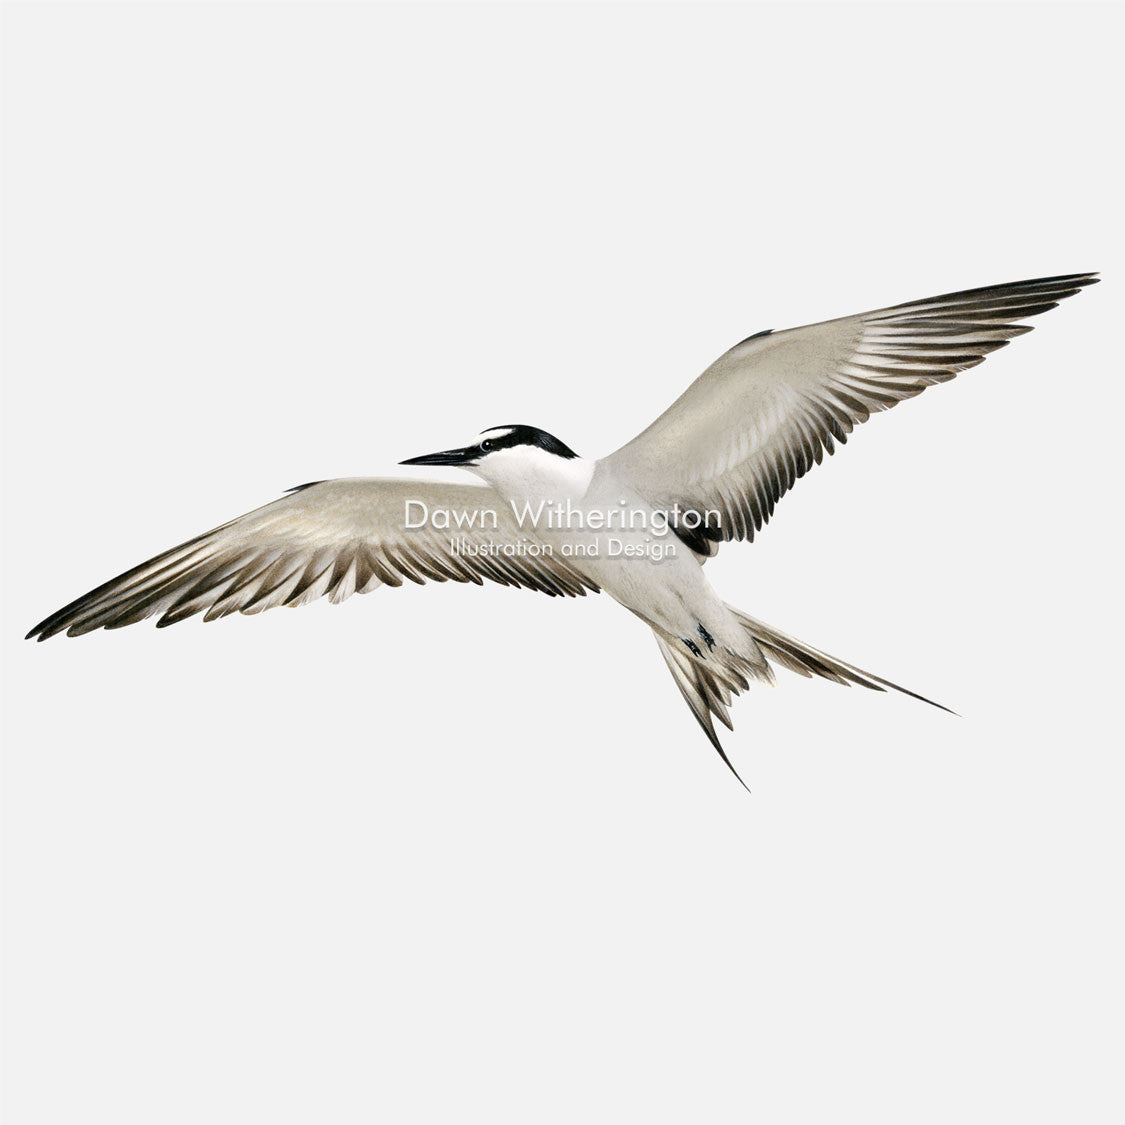 This beautiful illustration of a least tern, Sternula antillarum, in flight, is biologically accurate in detail.